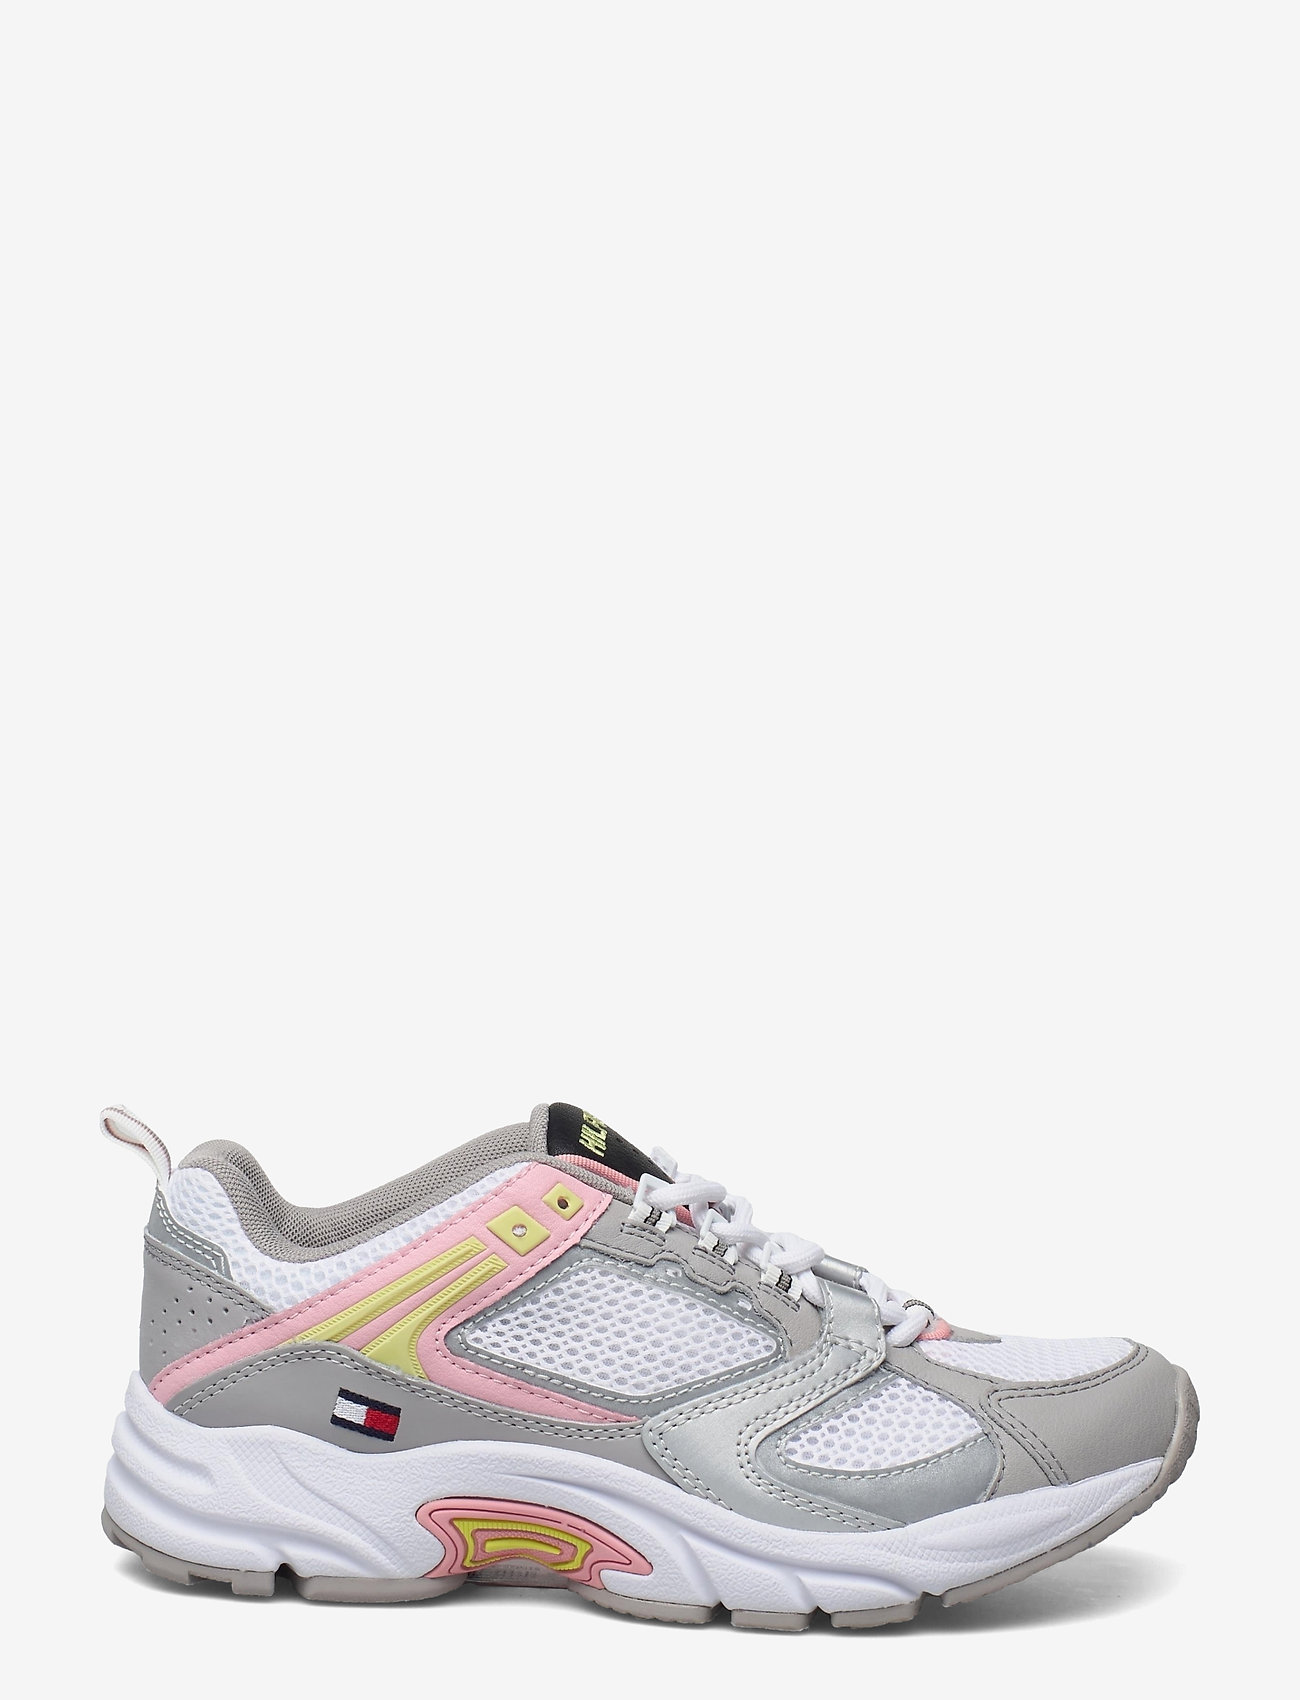 Tommy Hilfiger - WMNS ARCHIVE MESH RUNNER - low top sneakers - sterling grey - 1